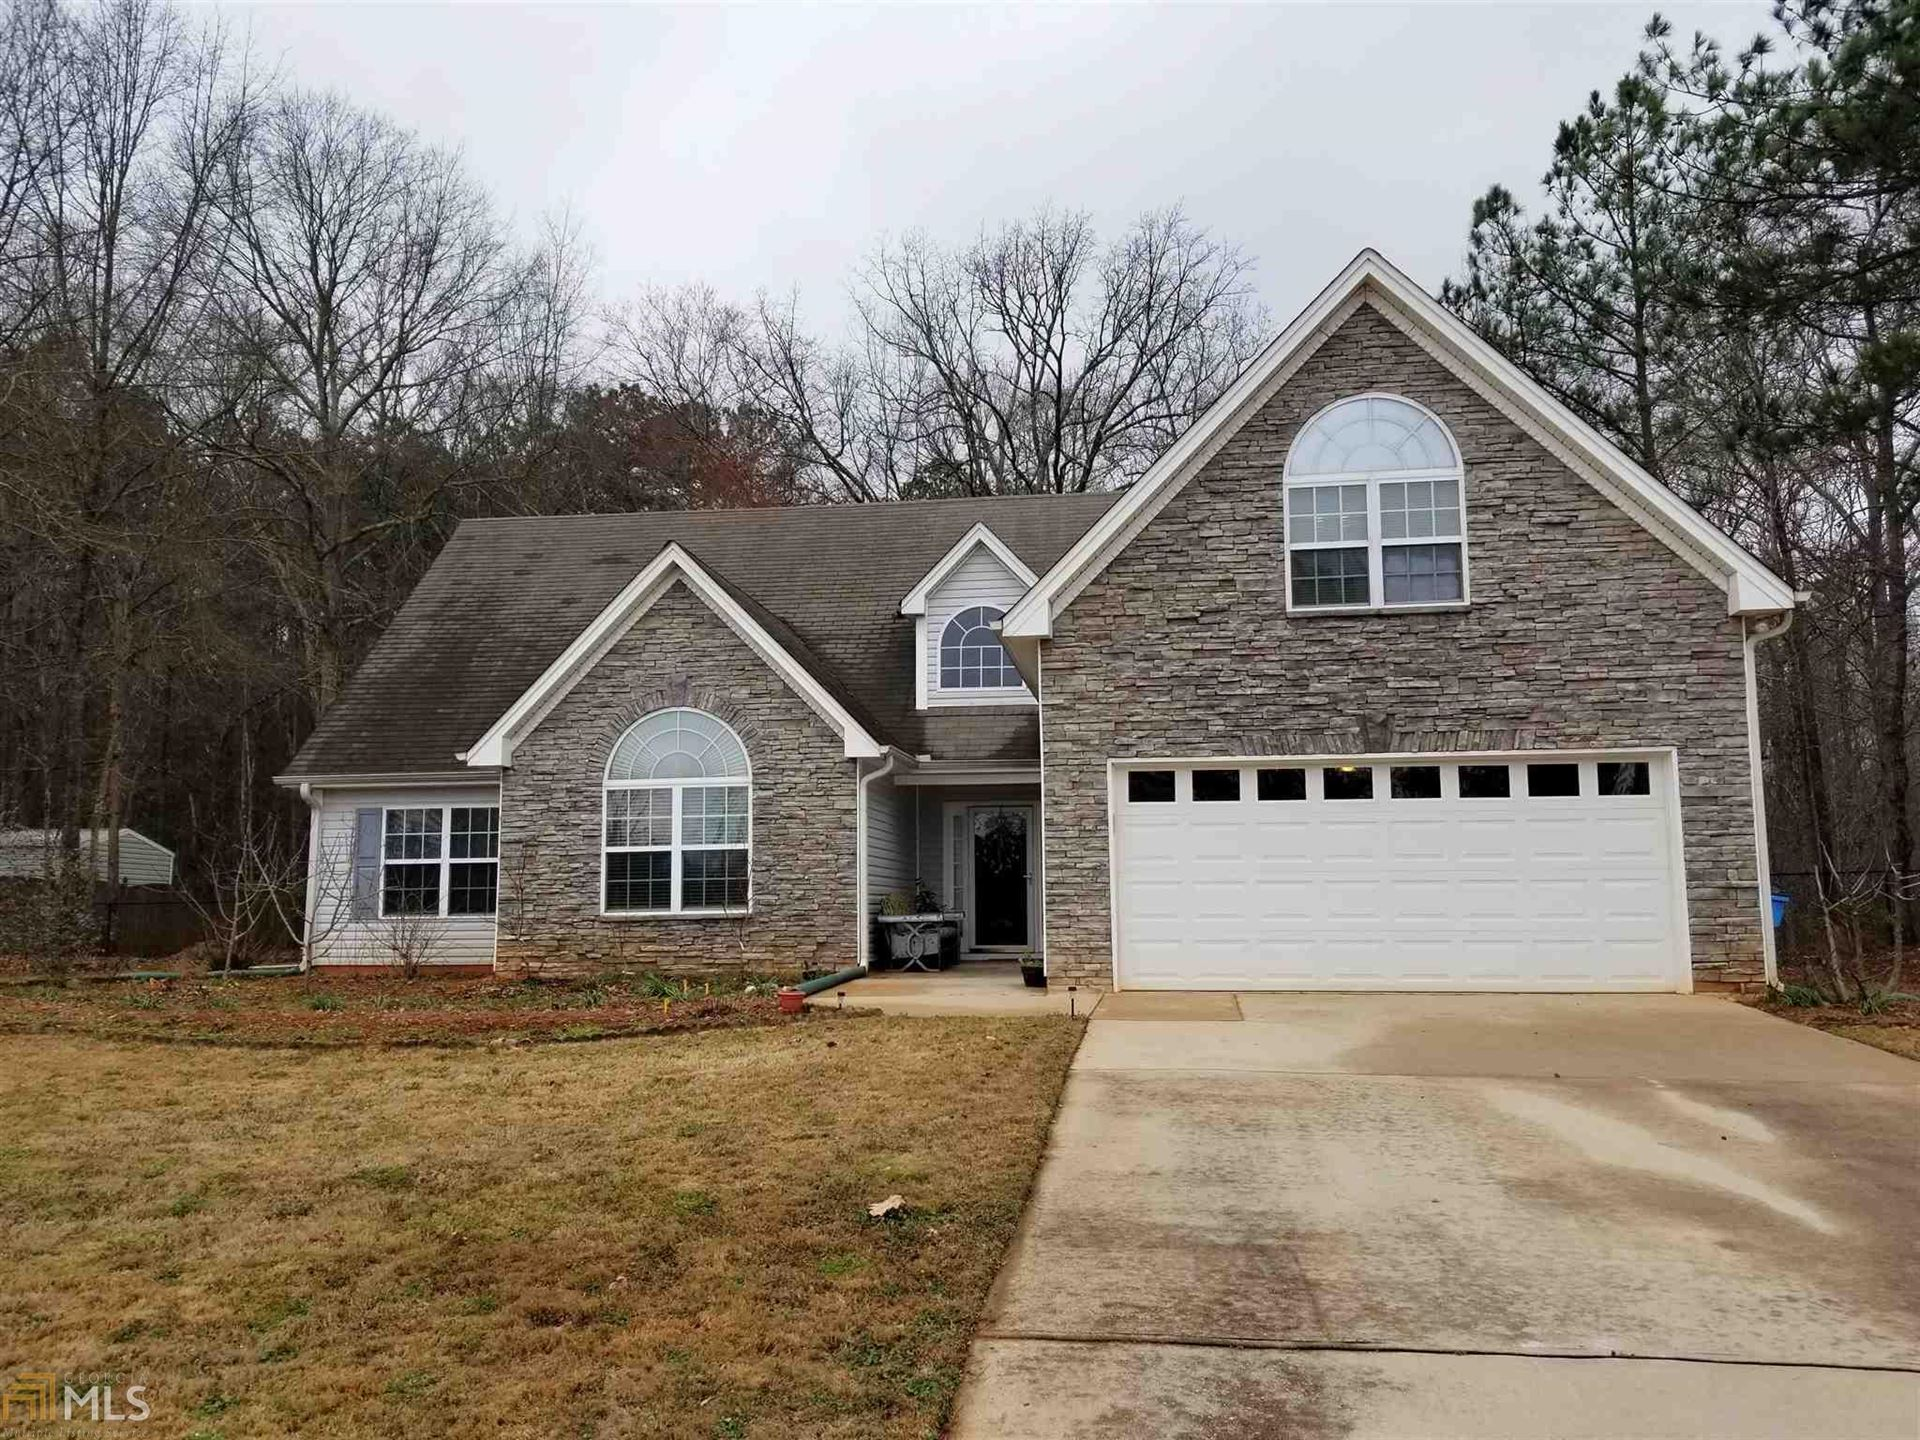 577 Deadwood Trl, Locust Grove, GA 30248 - #: 8934653